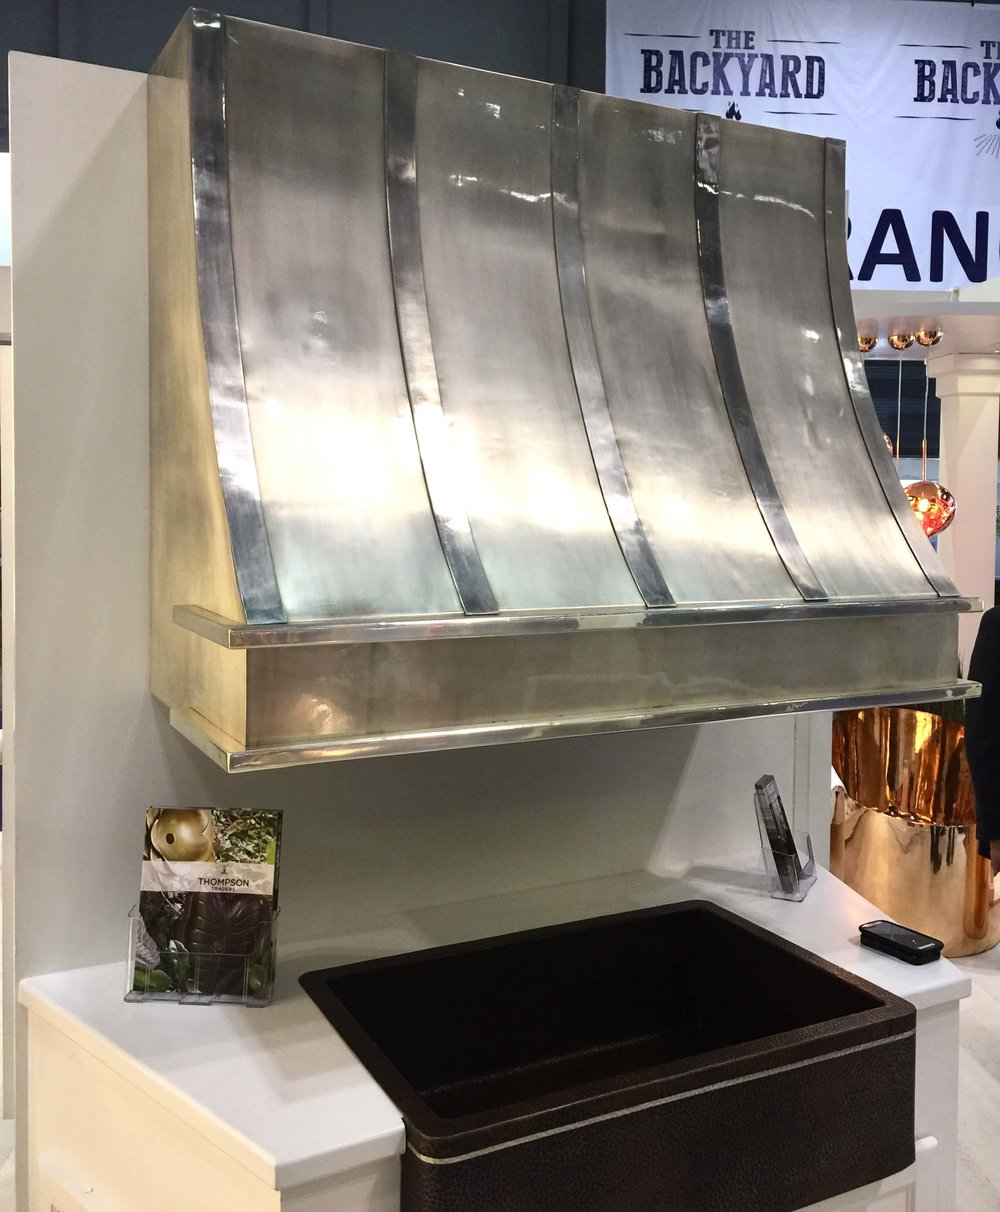 Beautiful metallic handmade kitchen hood by Thompson Traders #kitchenhood #customhood #venthood